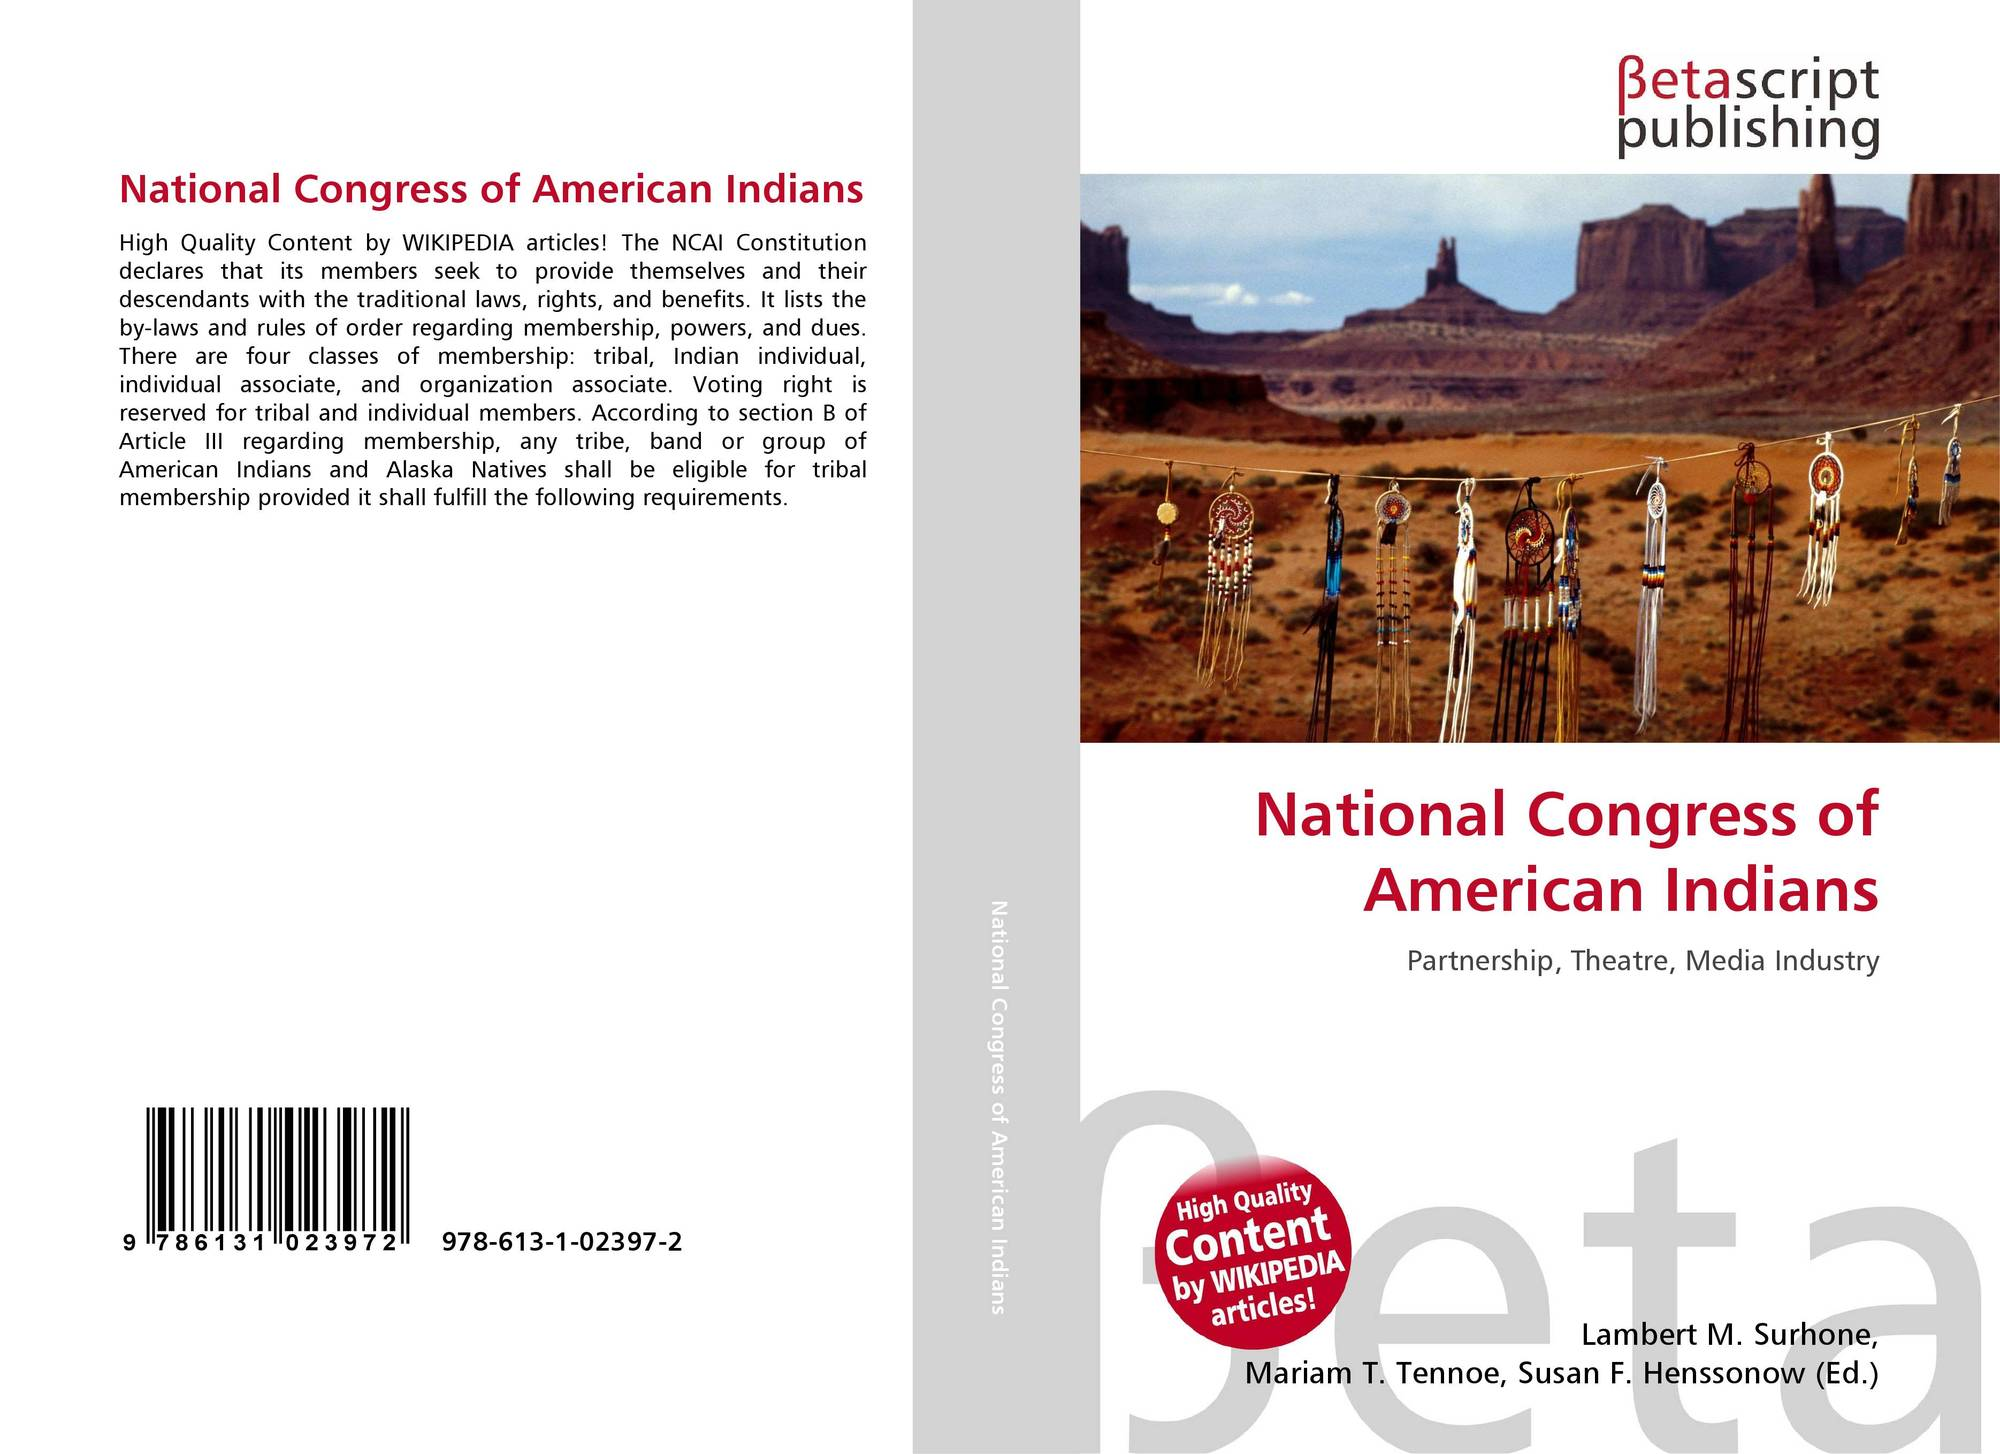 an analysis of american indians North american indian languages, those languages that are indigenous to the united states and canada and that are spoken north of the mexican border a number of language groups within this area, however, extend into mexico, some as far south as central america the present article focuses on the.